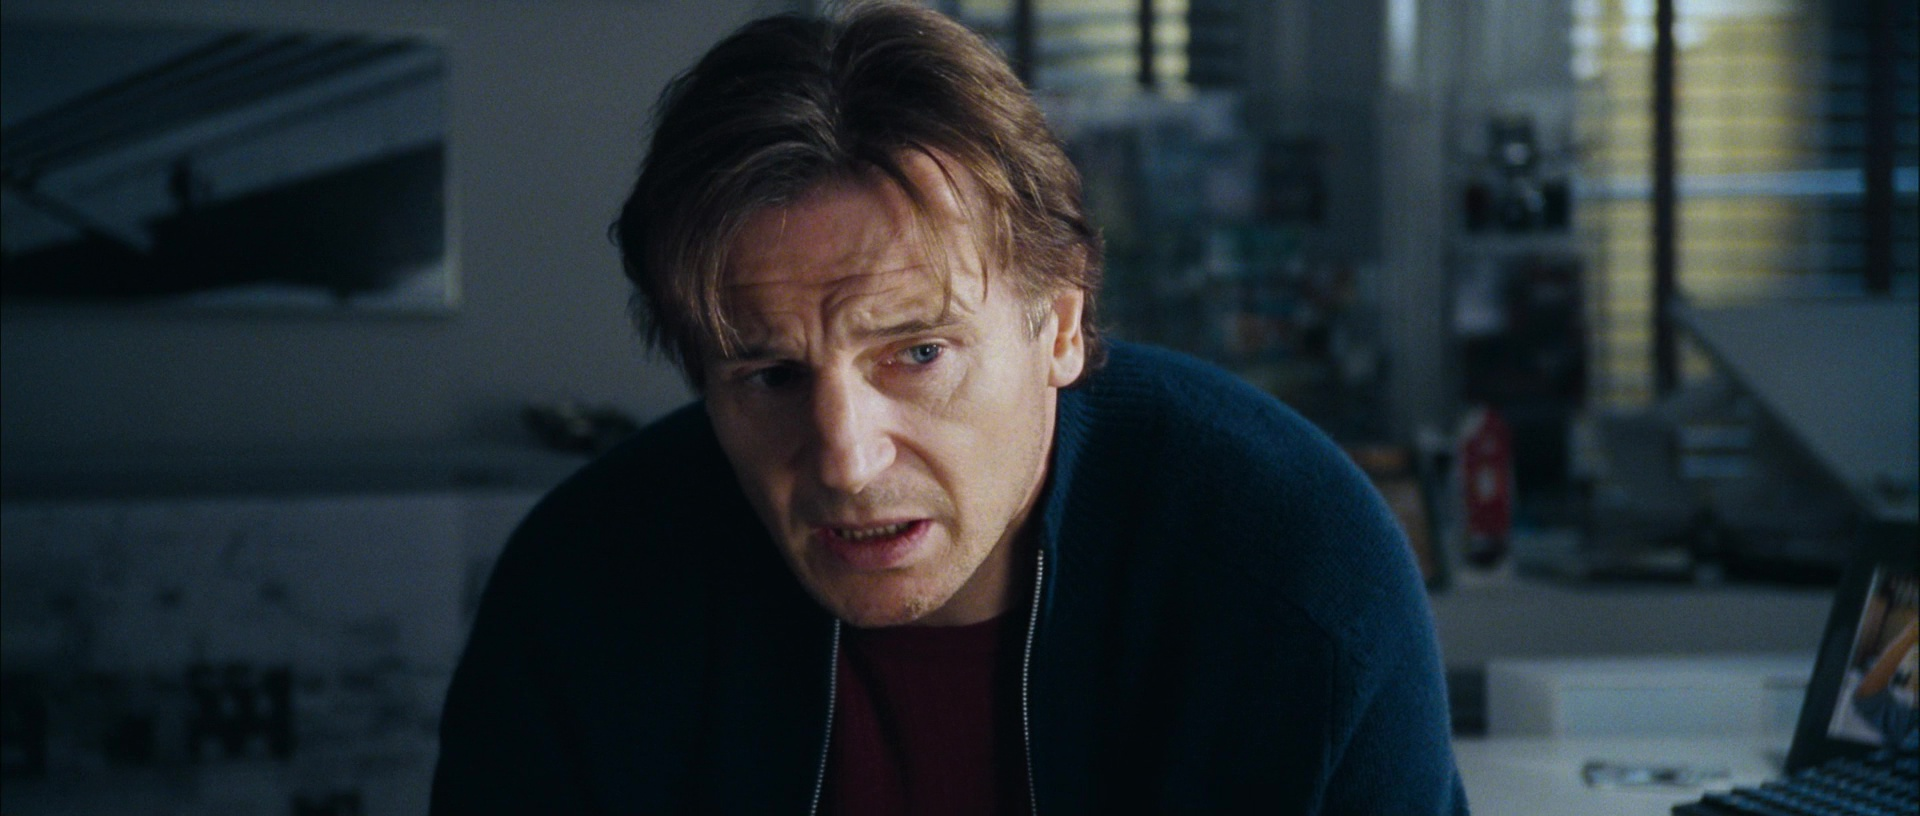 Love Actually film still 1